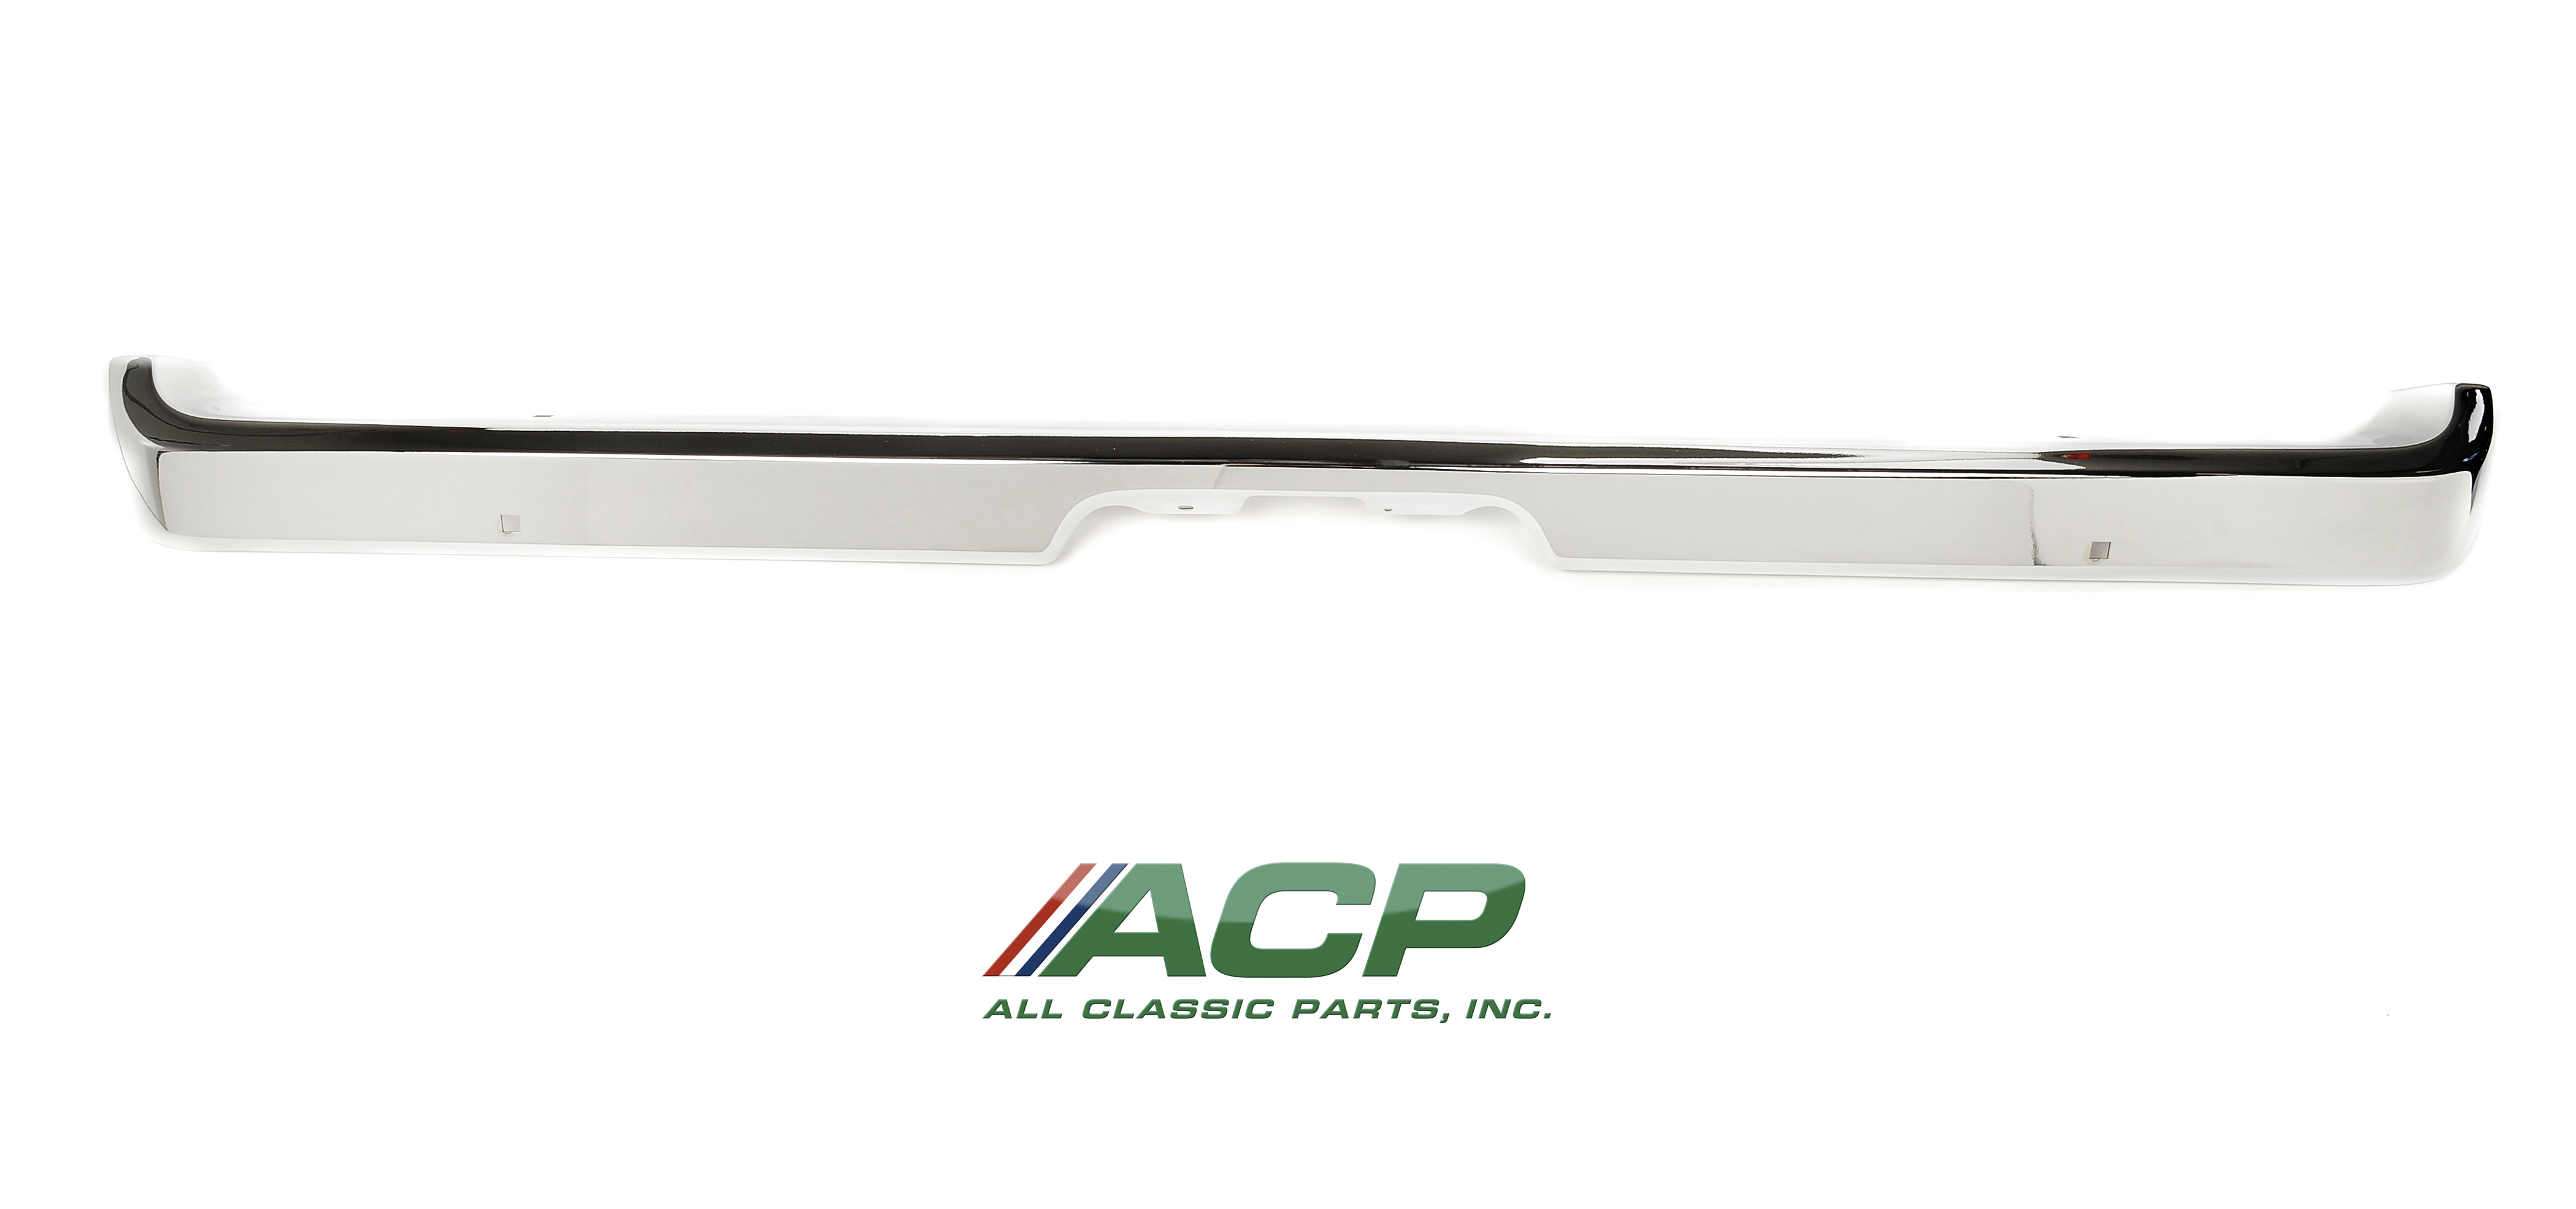 1971-73 Ford Mustang Rear Bumper High Quality Reproduction Show Quality Chrome